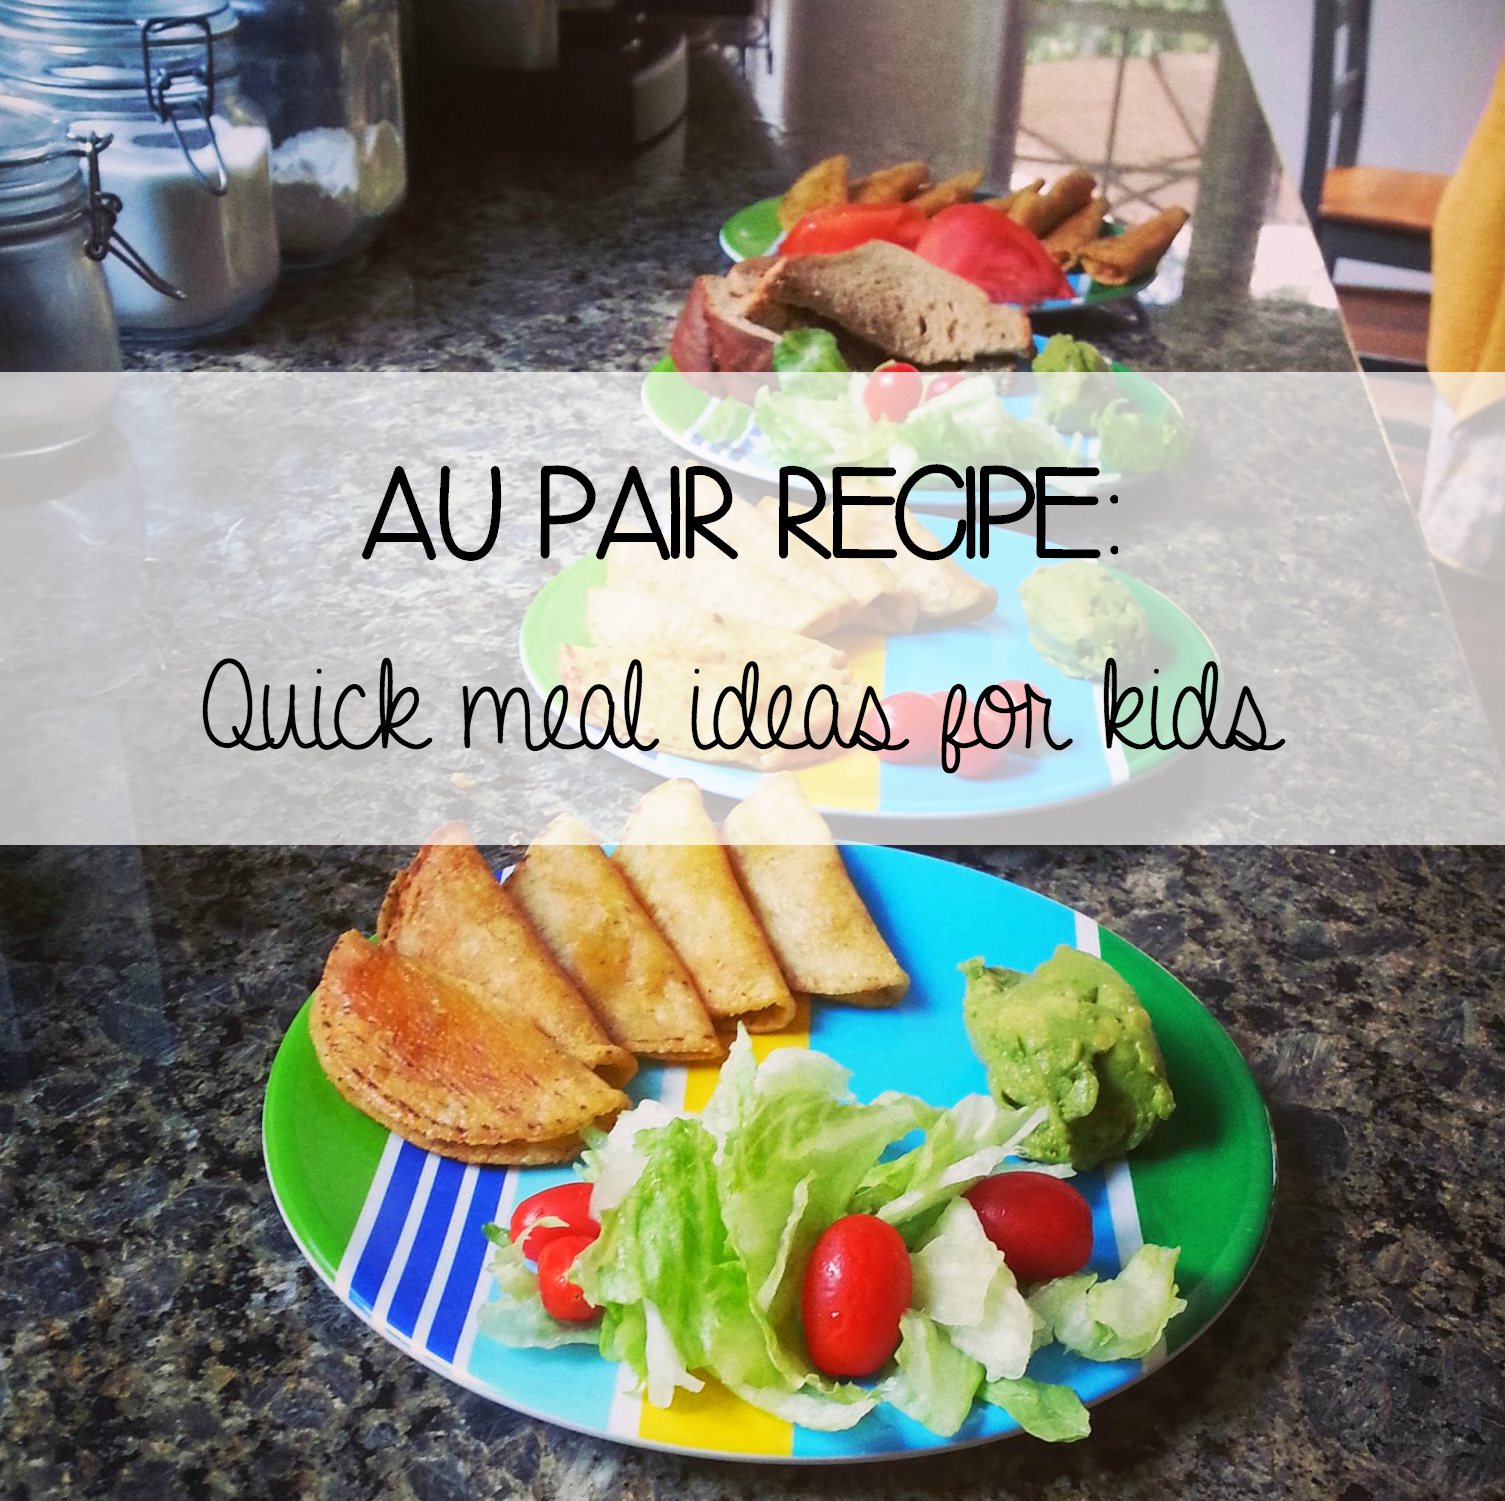 AuPair recipe: Quick meal ideas for kids